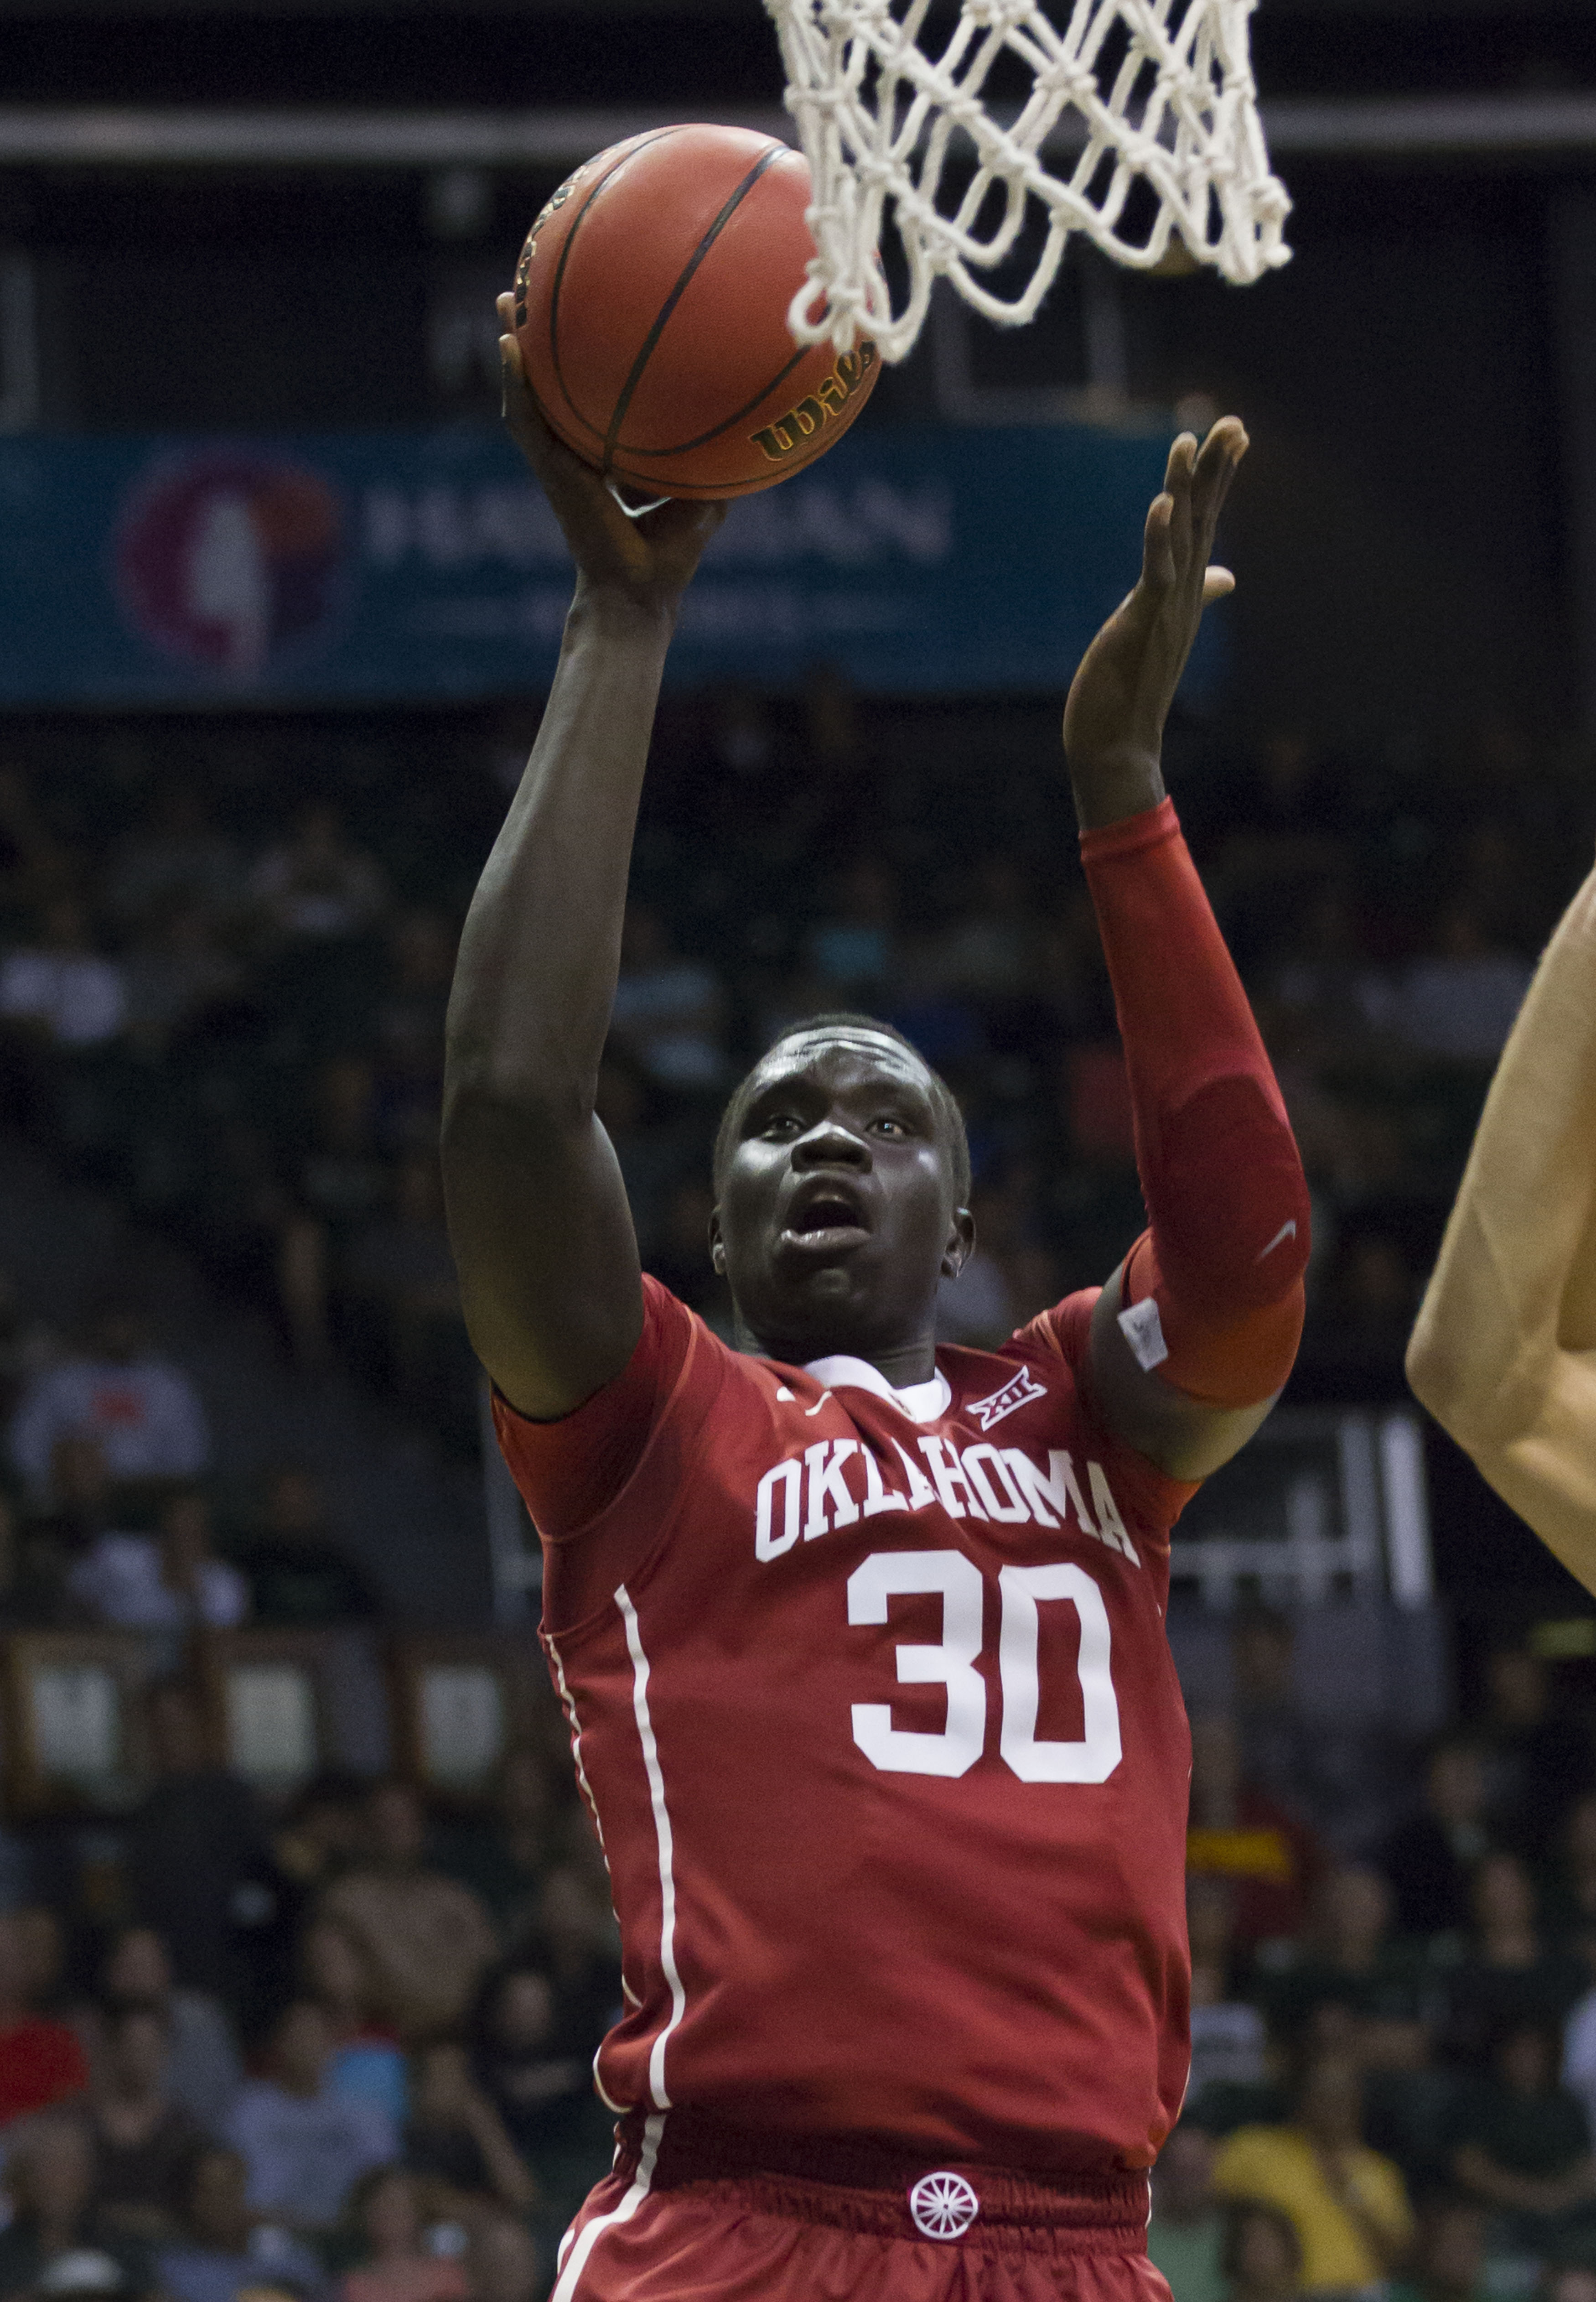 Oklahoma center Akolda Manyang (30) shoots a jump shot while playing against Hawaii in the first half of an NCAA college basketball game at the Diamond Head Classic, Wednesday, Dec. 23, 2015, in Honolulu. (AP Photo/Eugene Tanner)